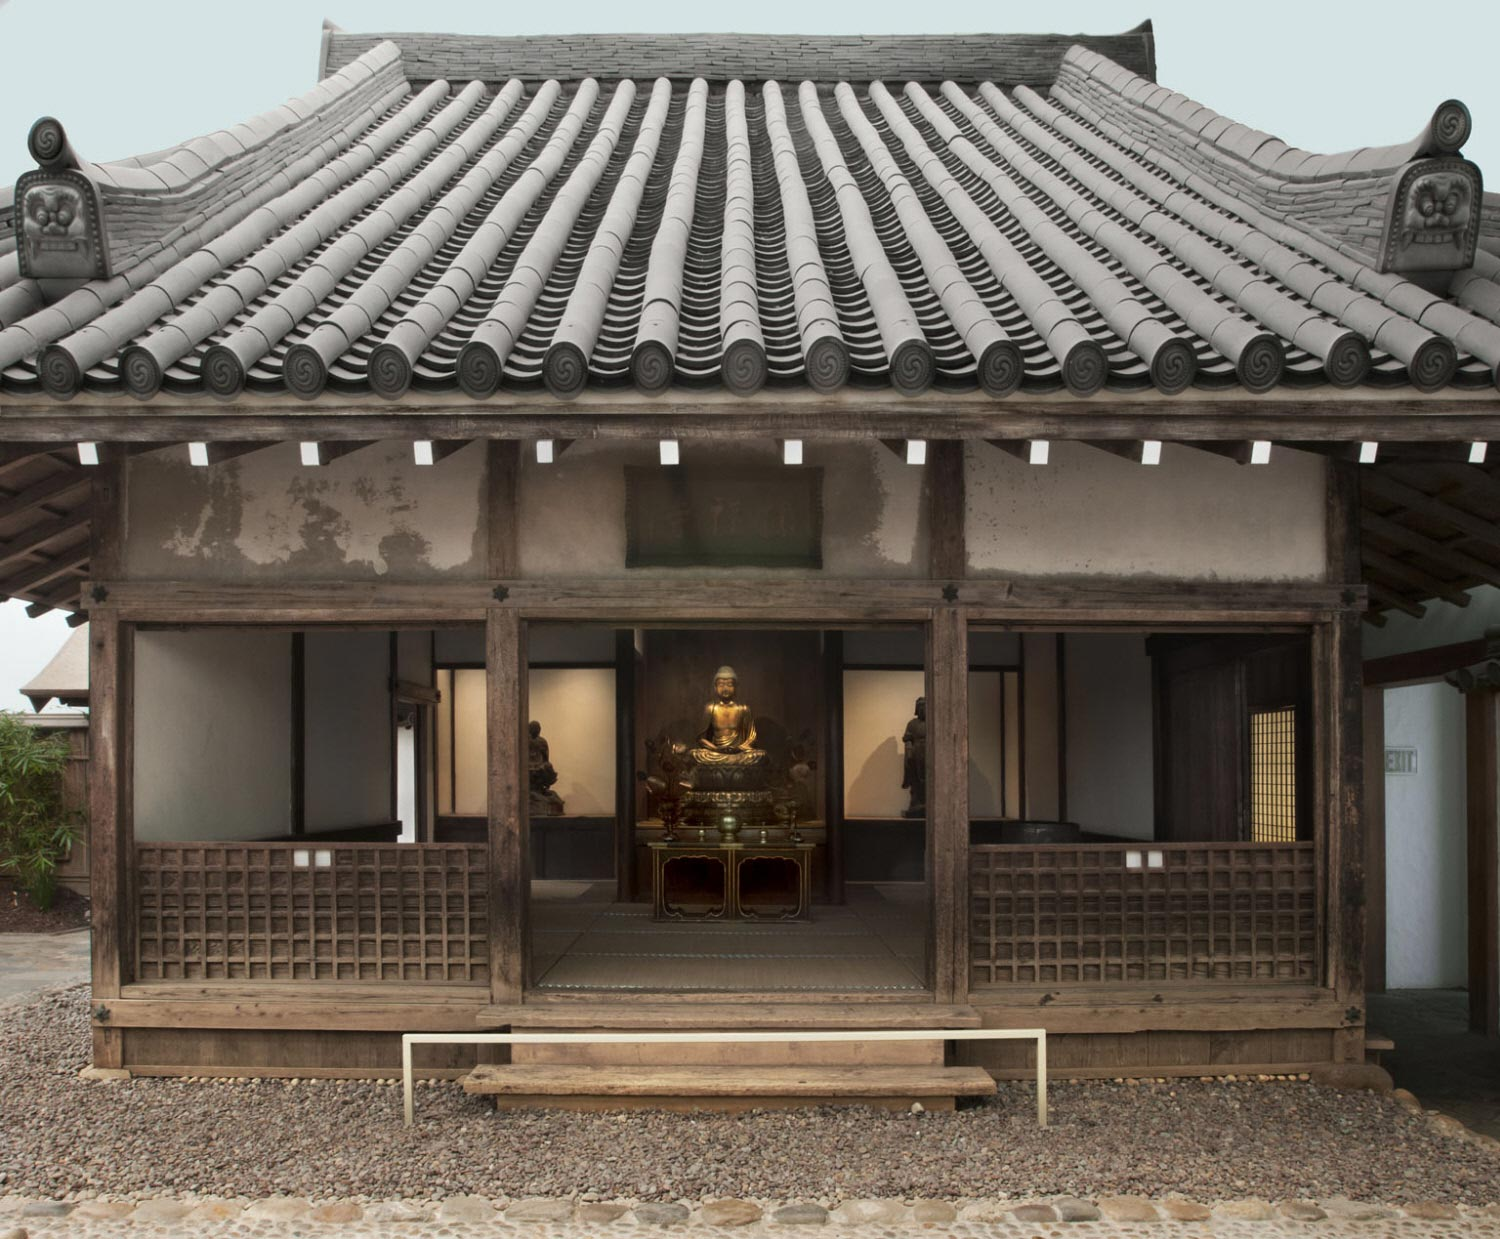 Temple of the Attainment of Happiness (Shōfukuji)